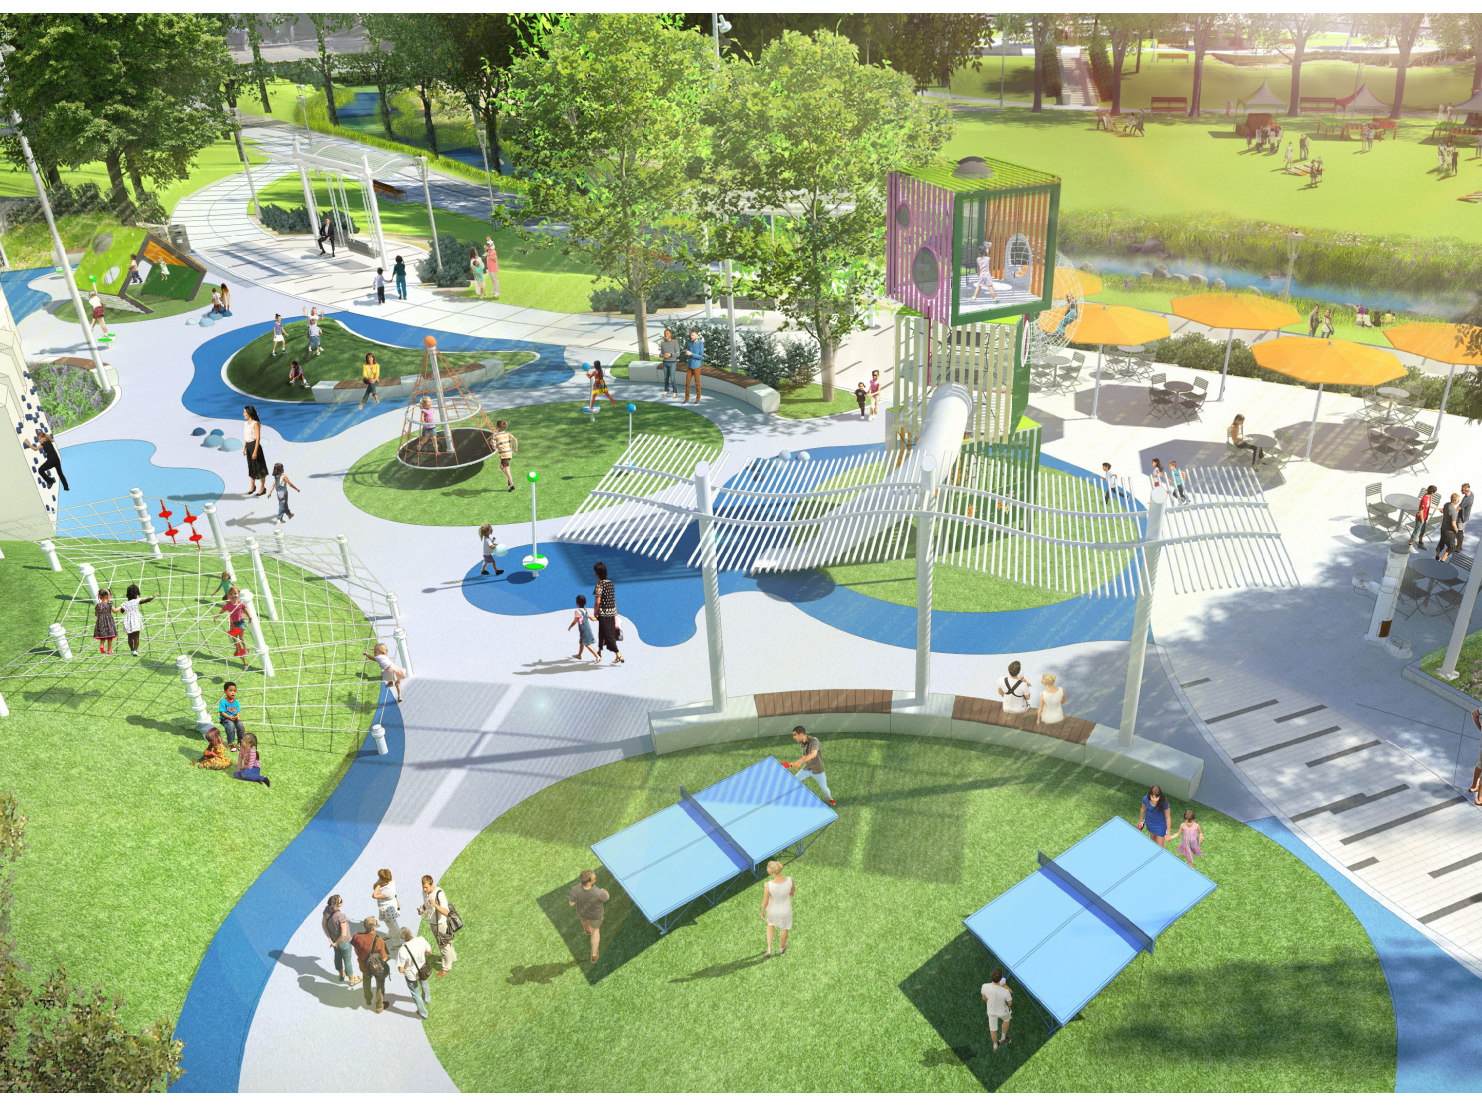 Greenwood's reimagined Old City Park will feature a 20-foot cube play tower that will be the third of its kind in the nation.